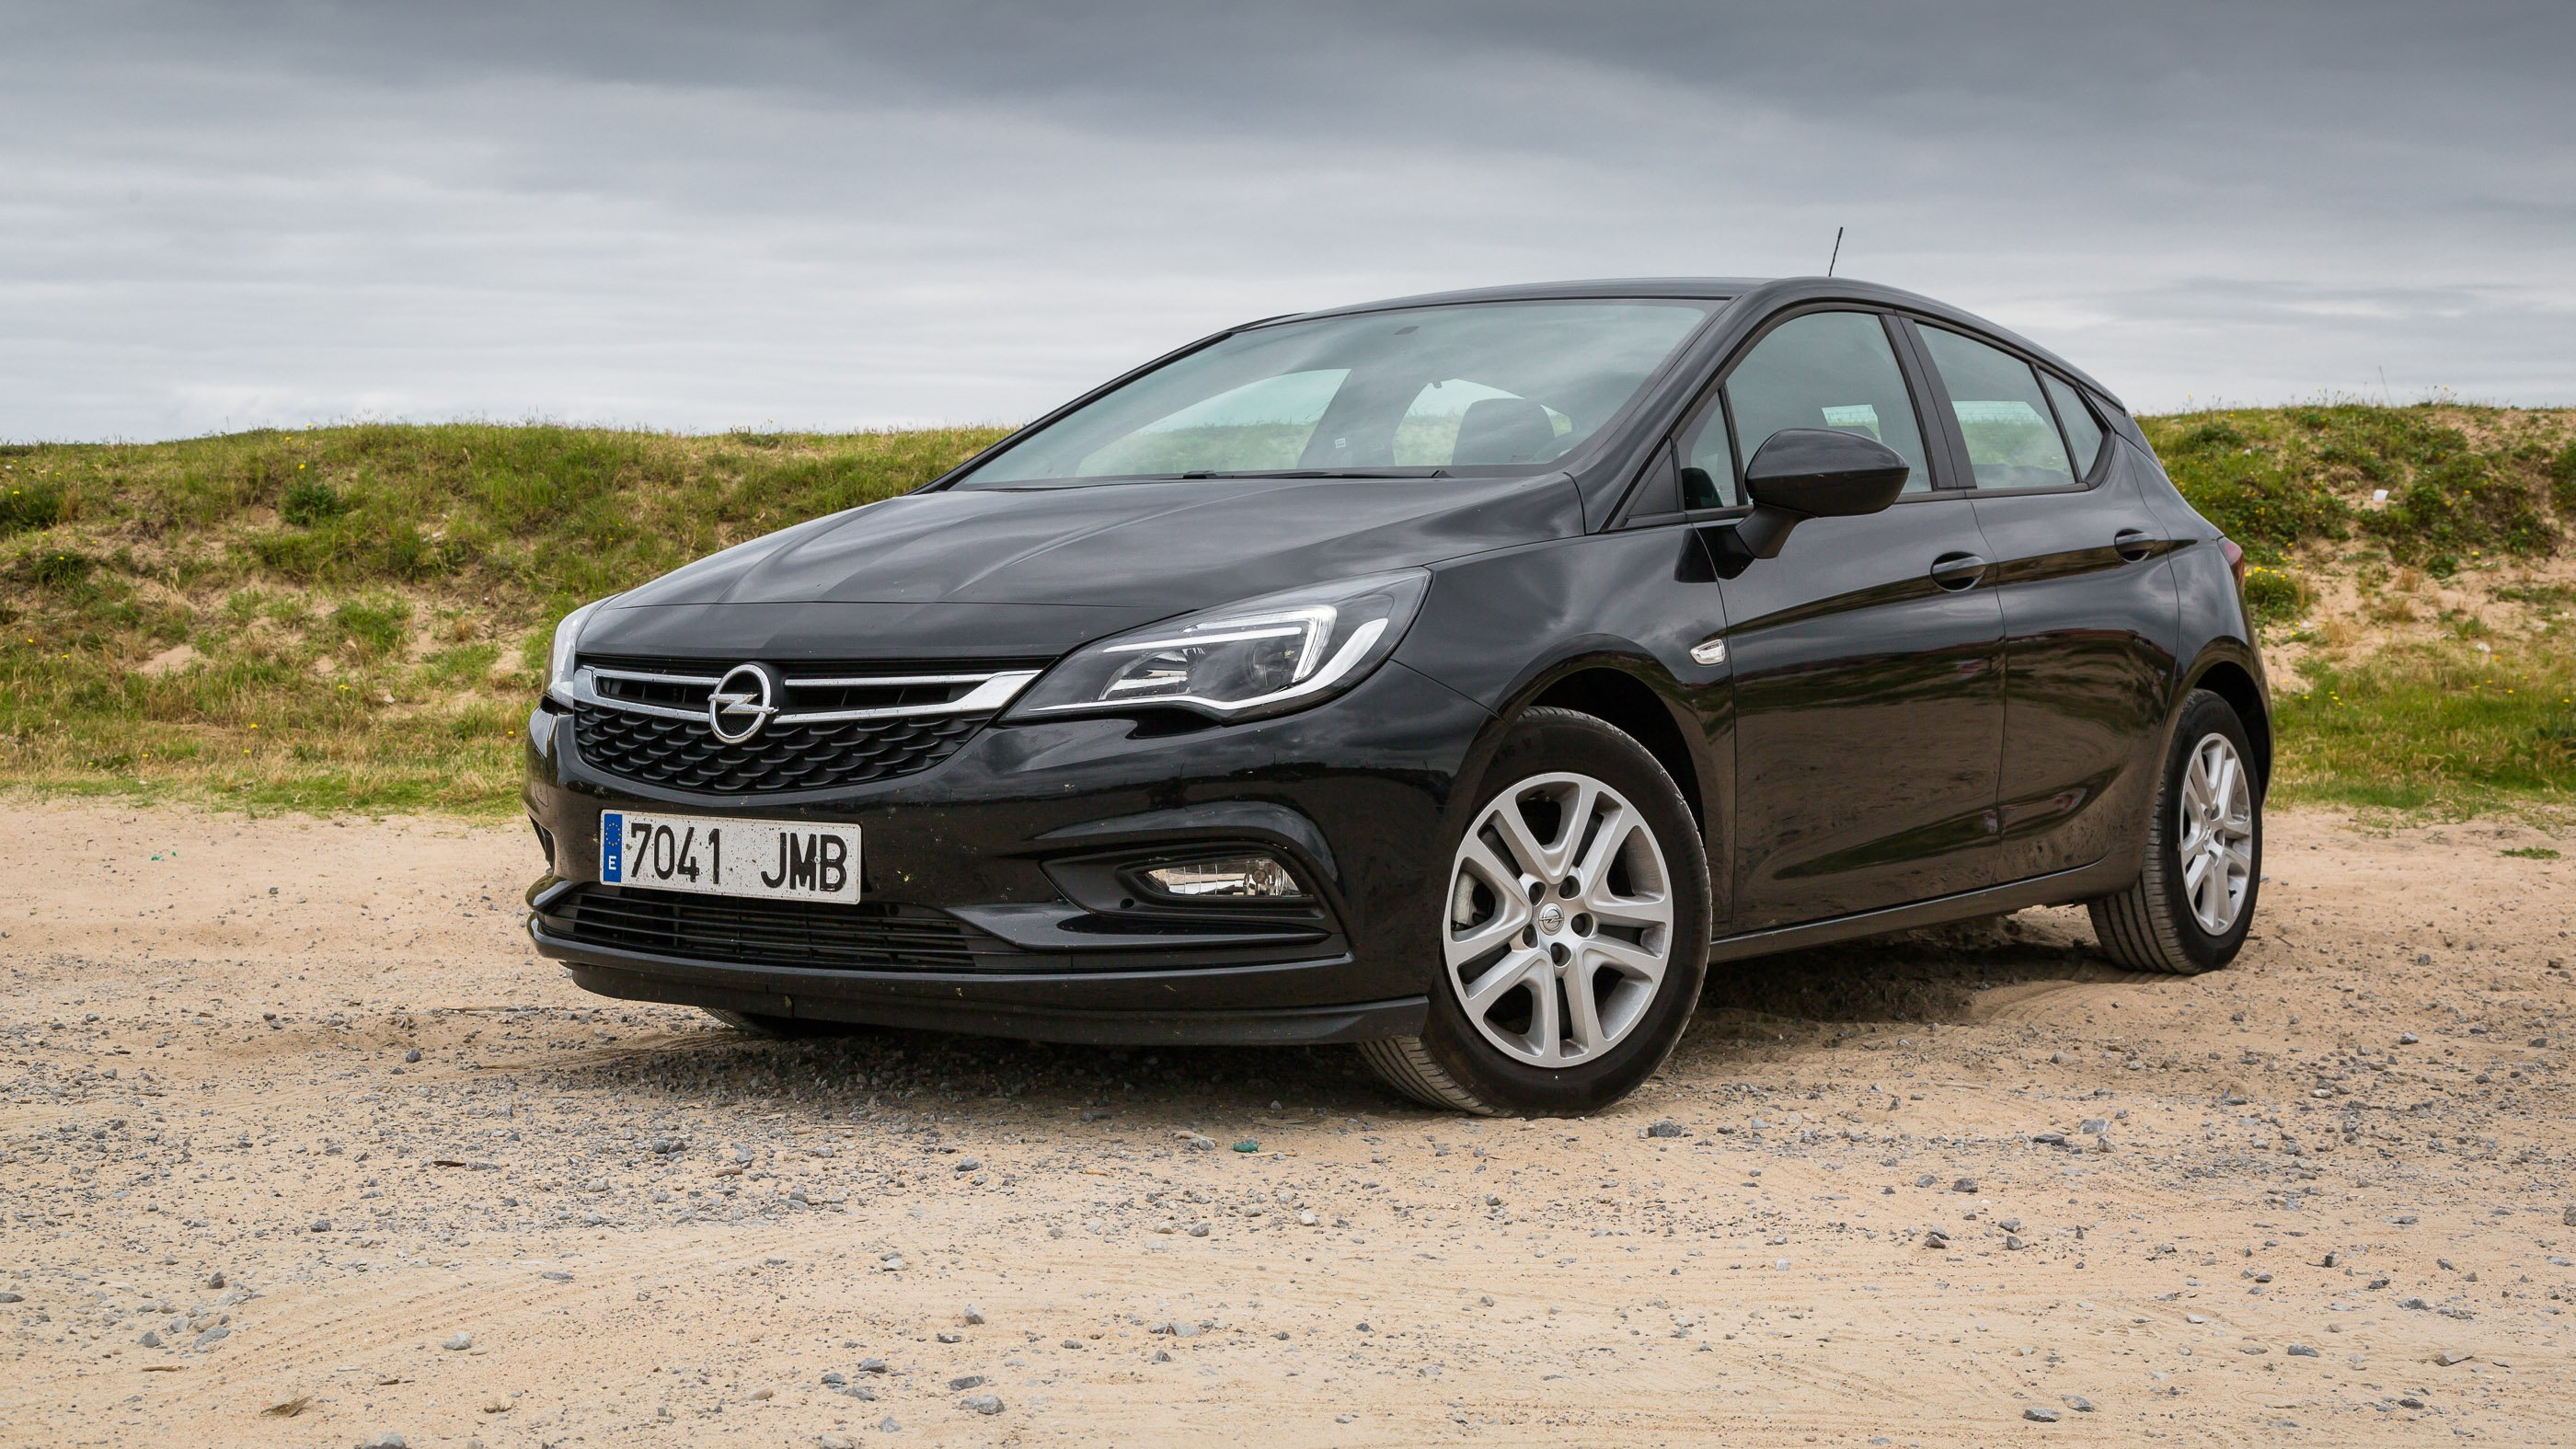 2016 holden opel astra review caradvice. Black Bedroom Furniture Sets. Home Design Ideas